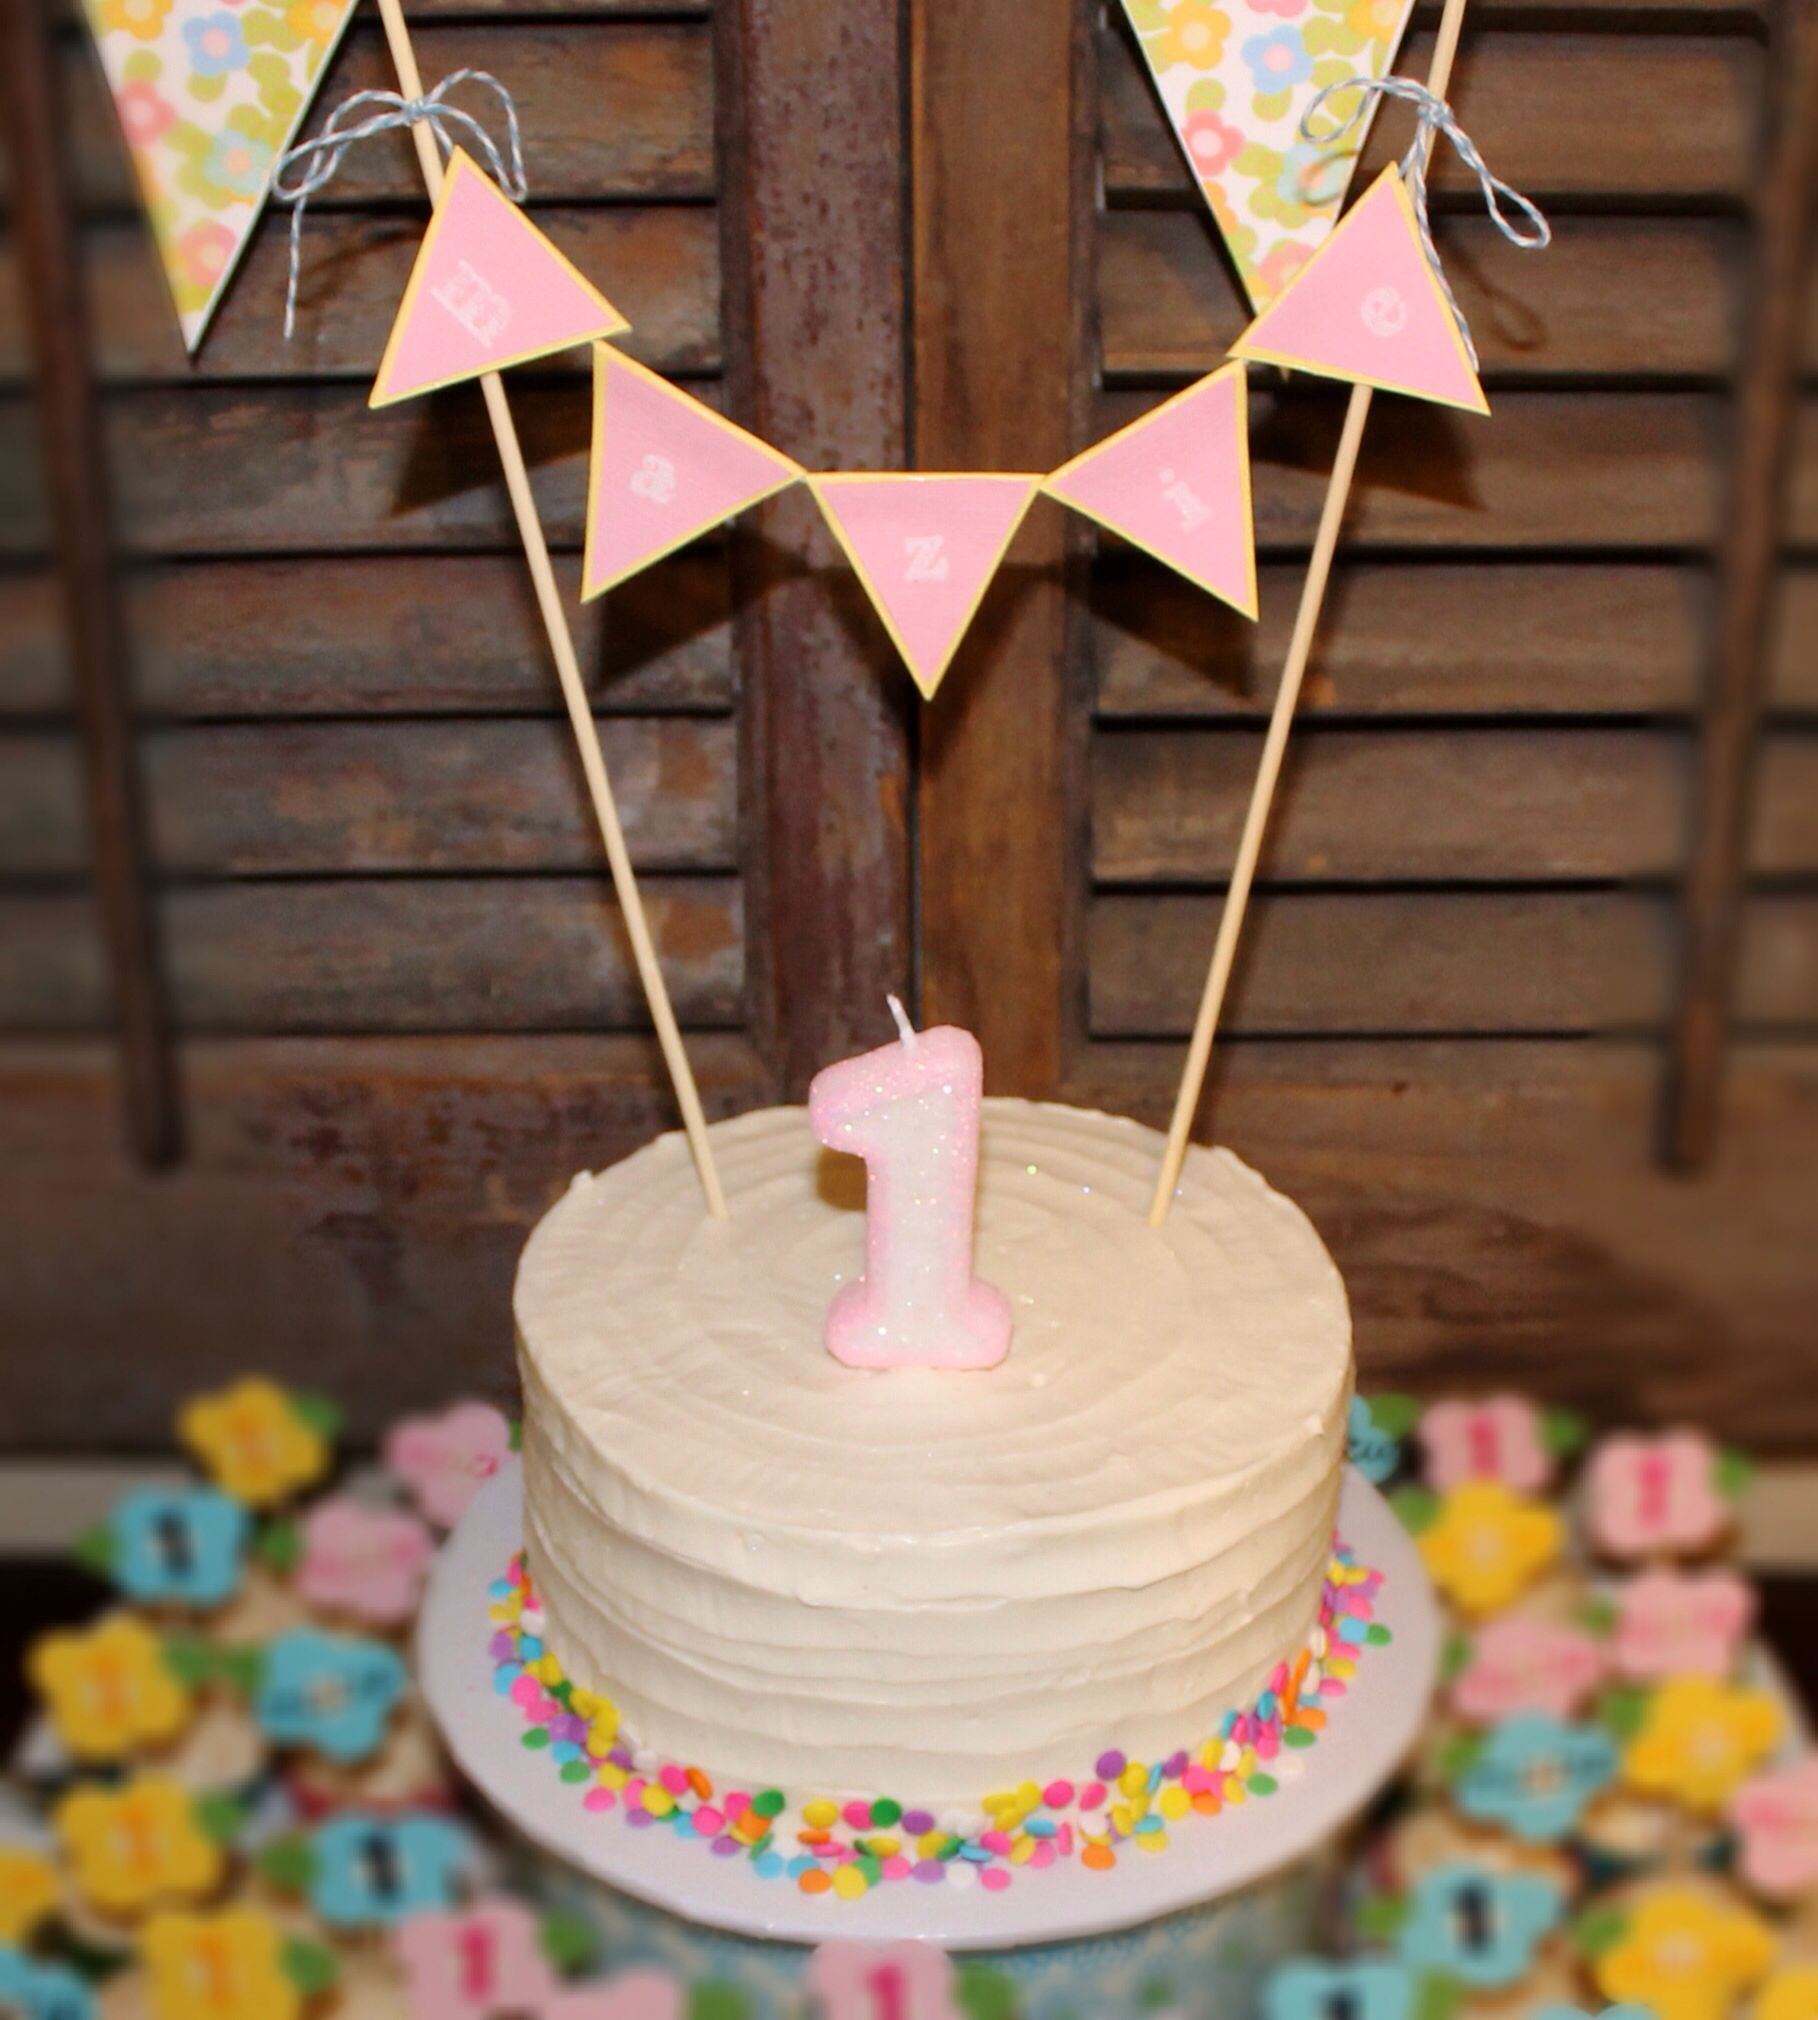 Healthy First Birthday Smash Cake. Made With Bananas & Applesauce, No Sugar Added. Topped With